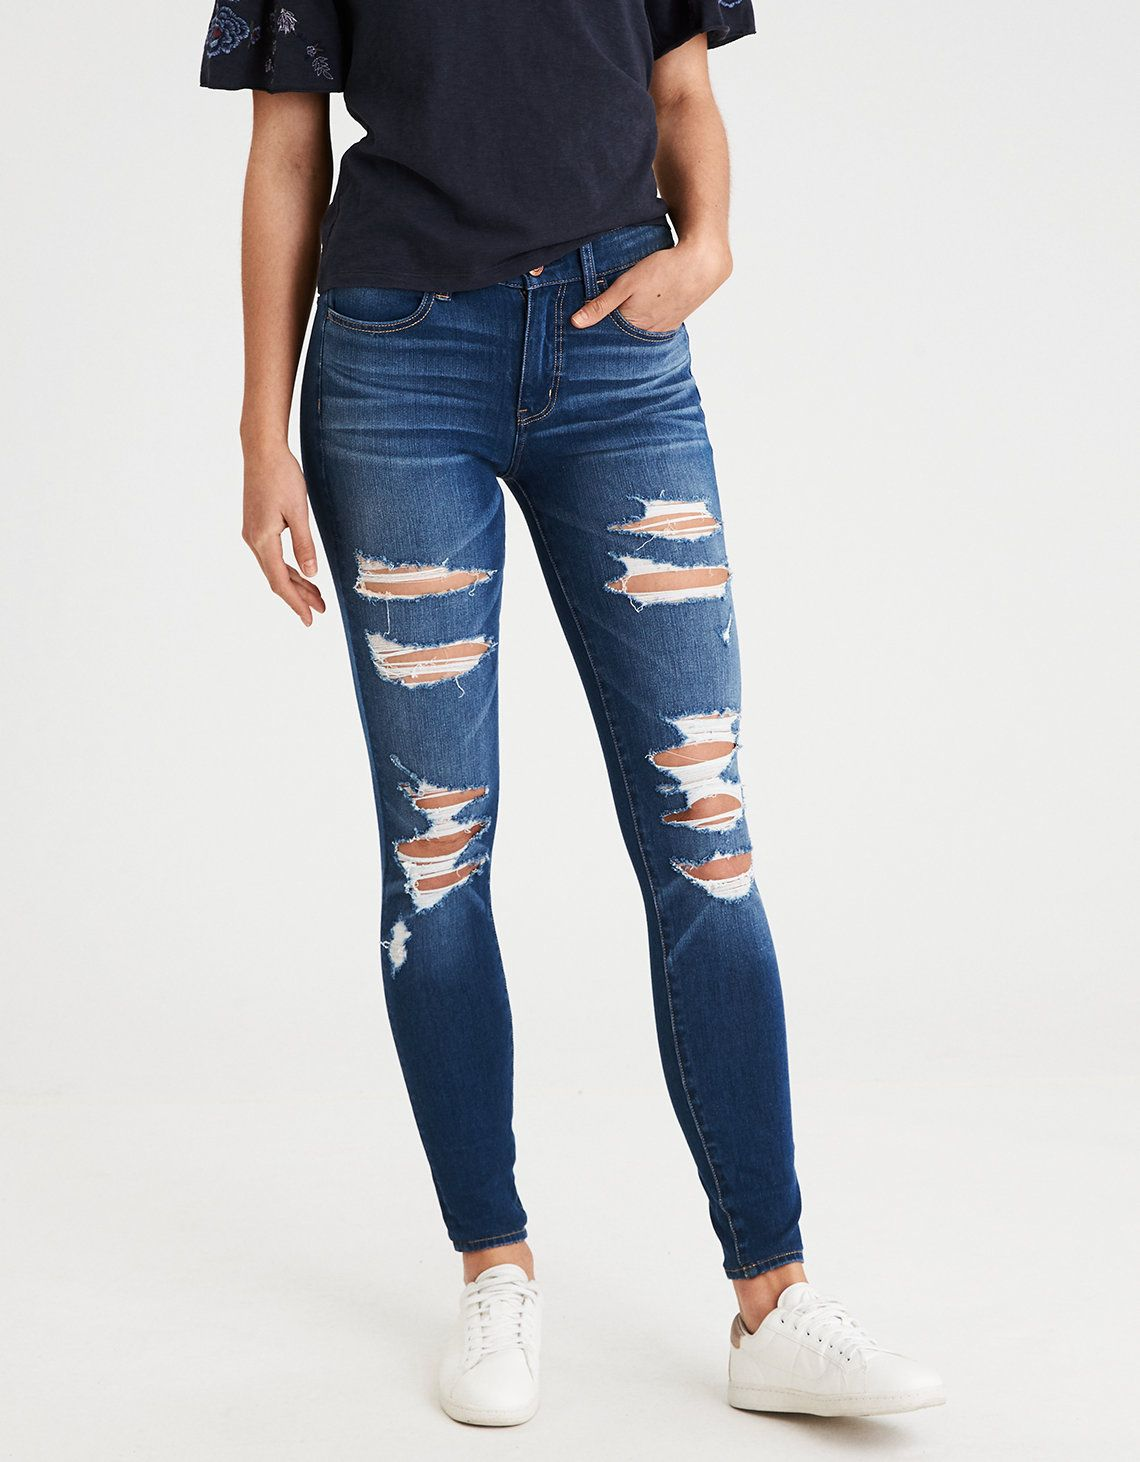 73c7b88ee17 They kinda look exactly like my Hollister jeans/jeggings. May have to hunt  these down.